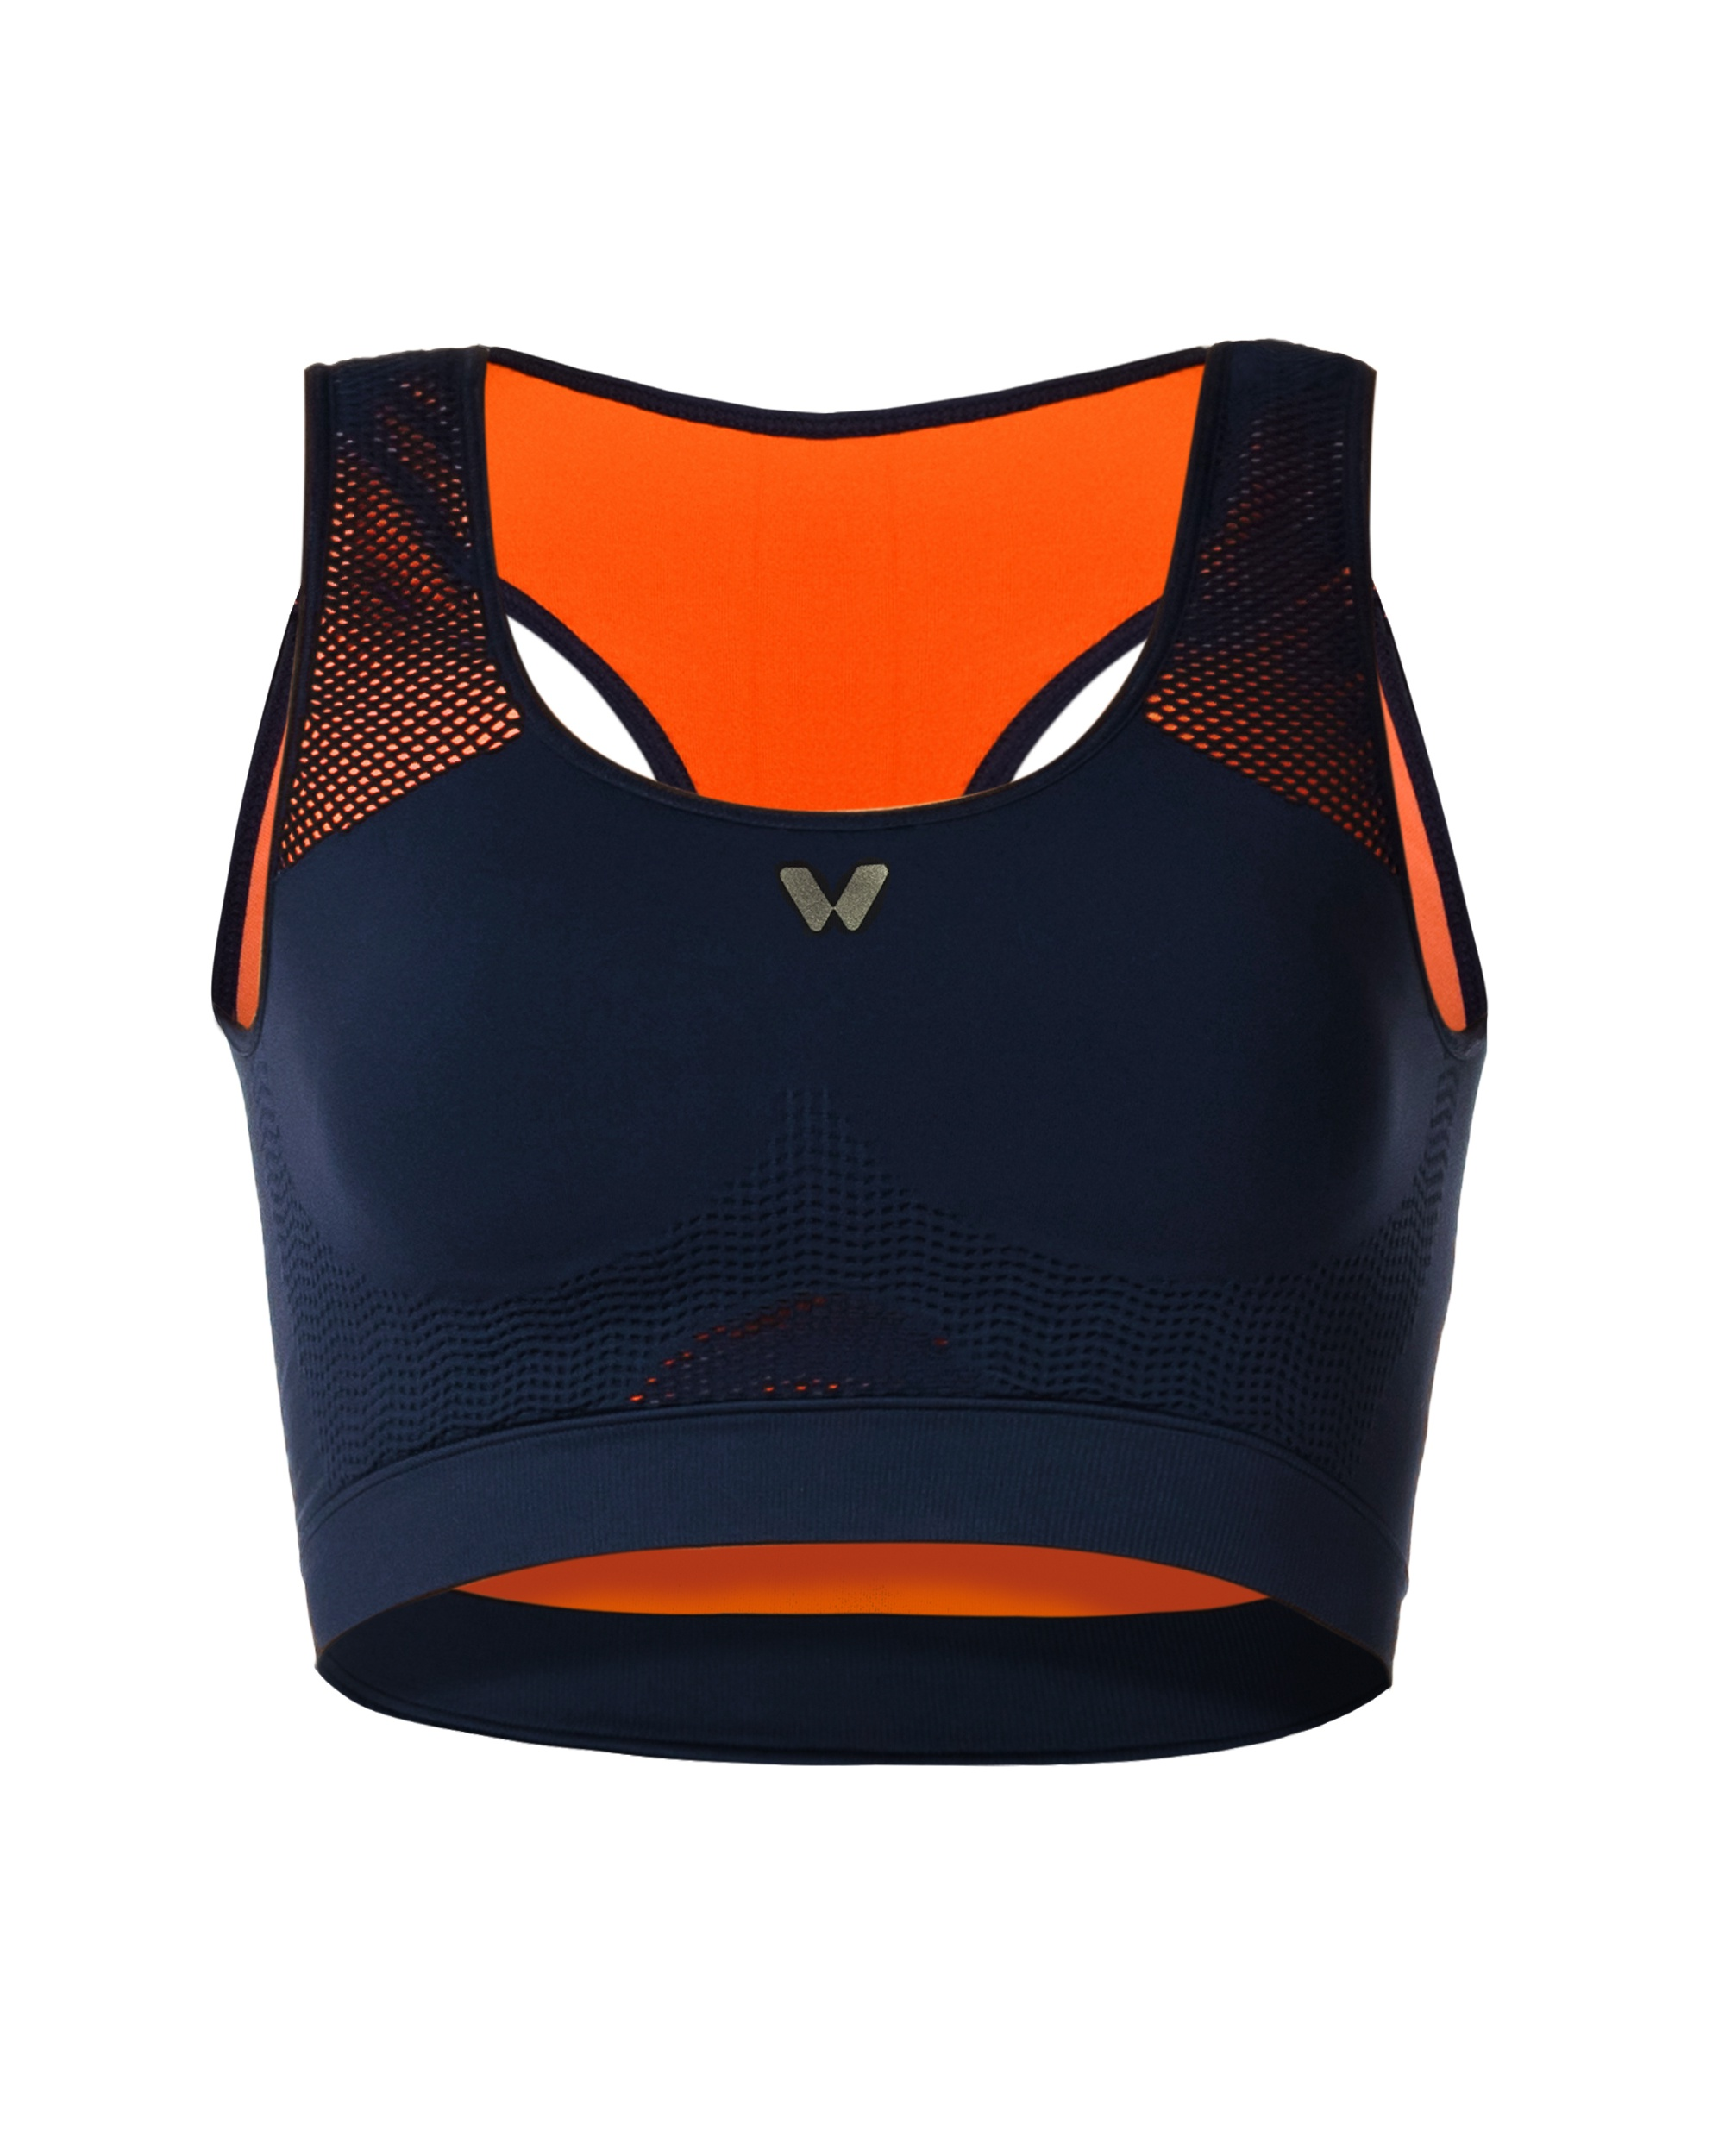 SPORTS BRA SEAMLESS SPORTS BRAS AND TOPS CE IDAWEN - Woman and